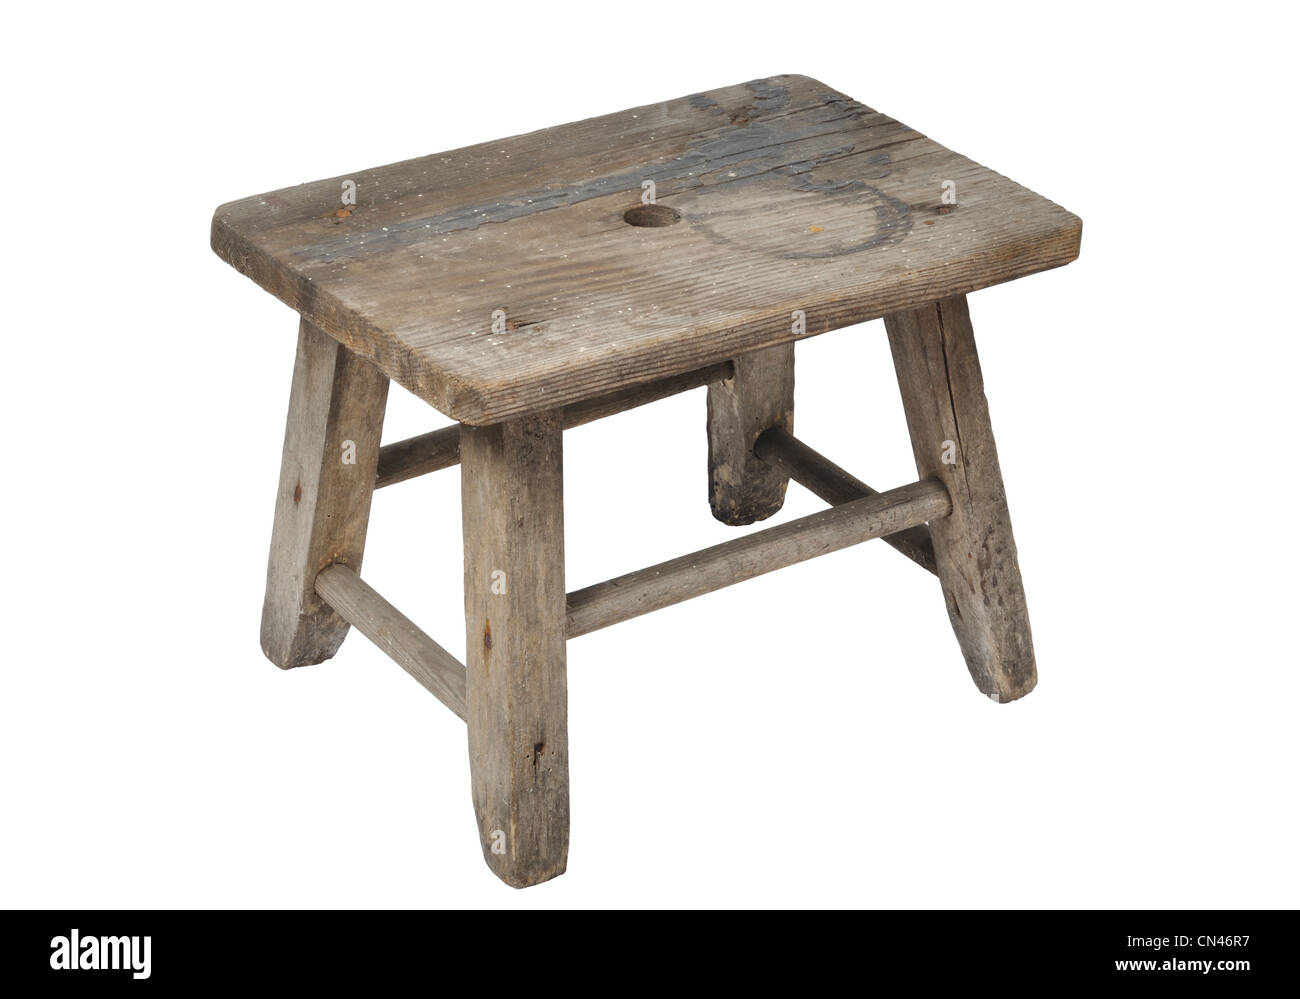 Old wooden stool isolated on white background - Stock Image